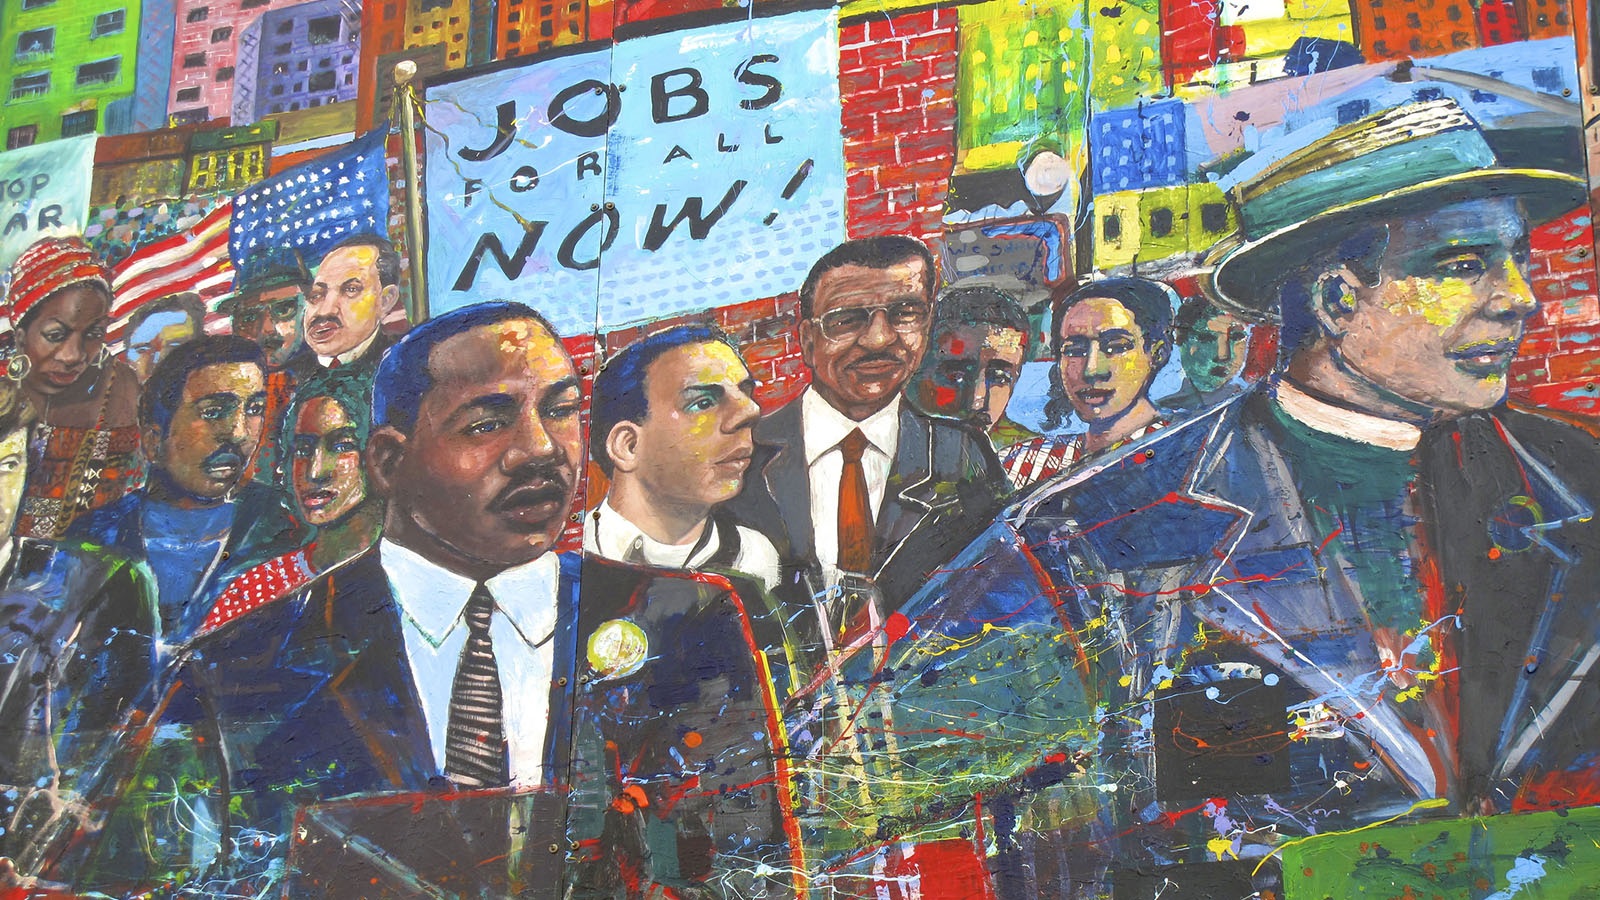 A mural shows Martin Luther King Jr. along with several prominent African Americans holding the sign - Jobs for All Now!